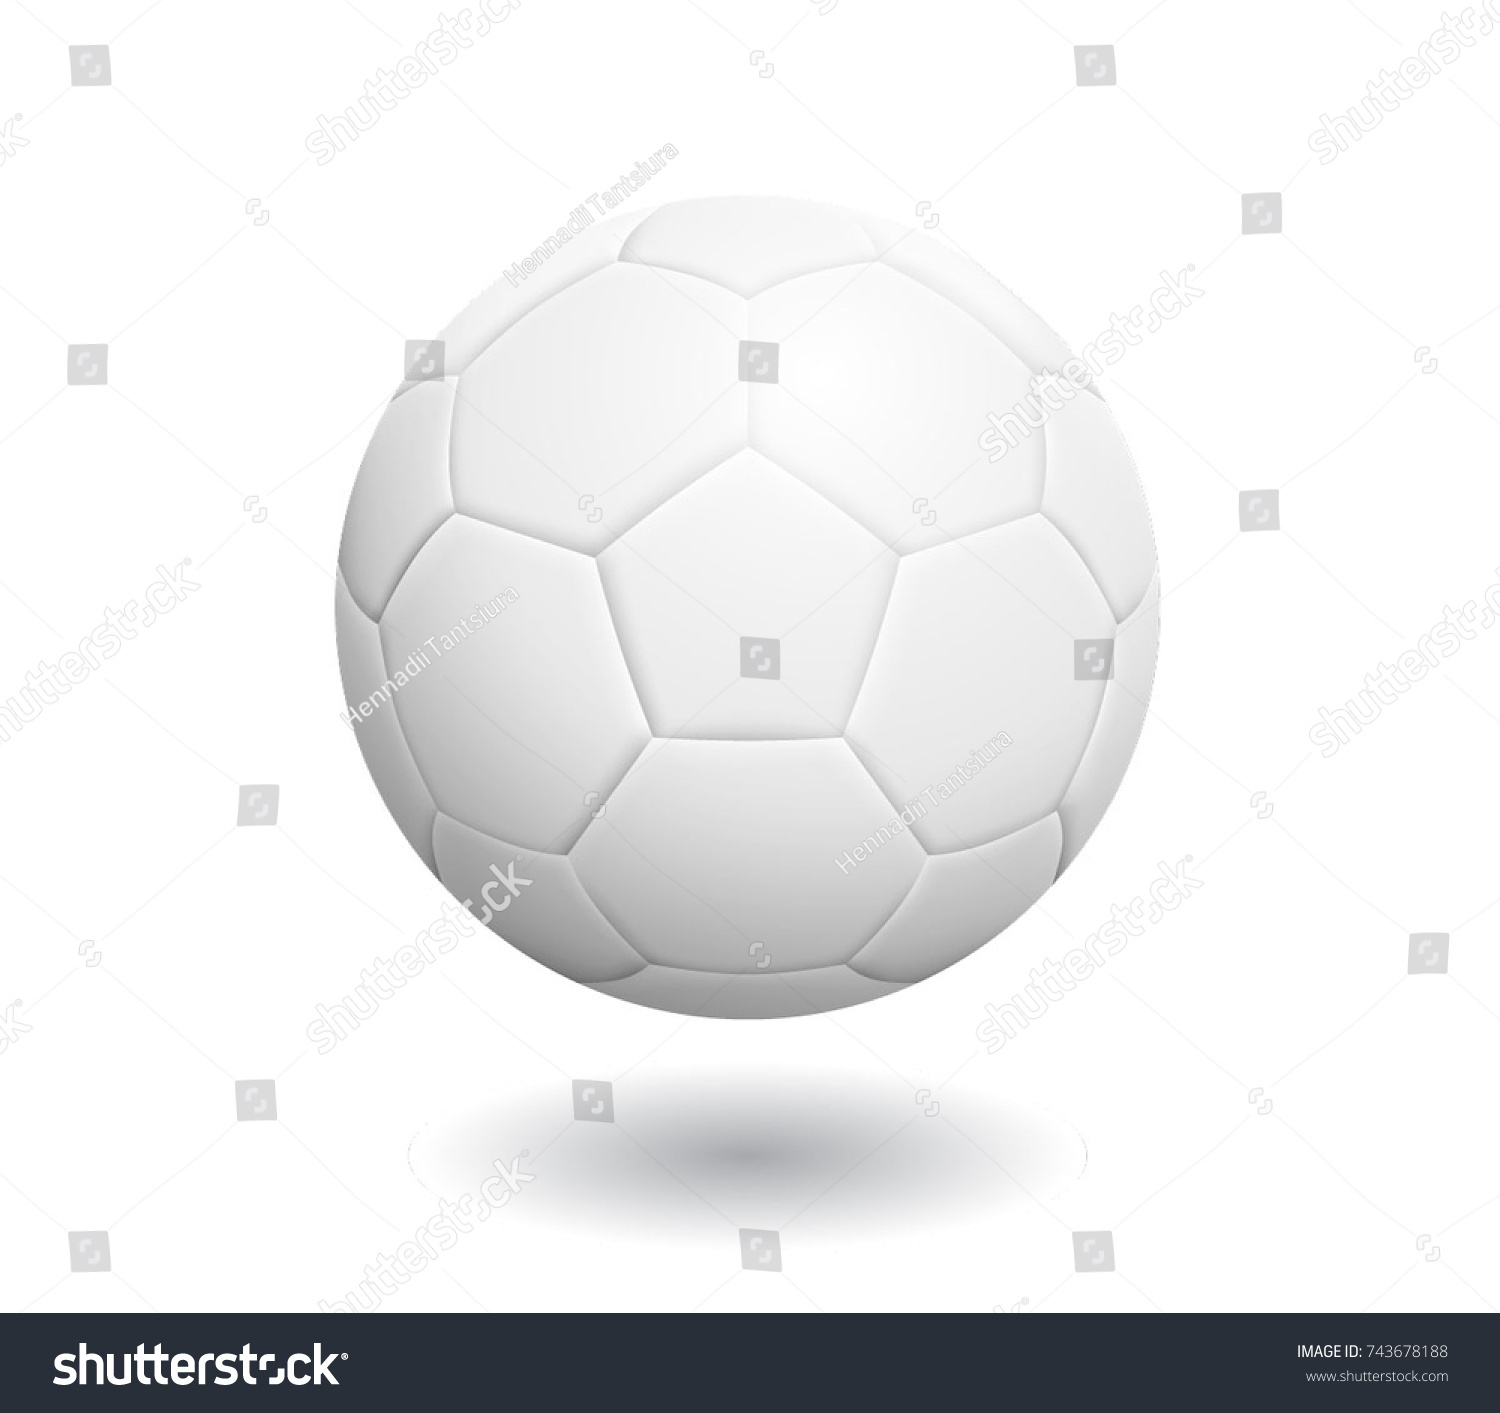 Soccer Ball With Classic Design Isolated On White Background. Vector Illustration.